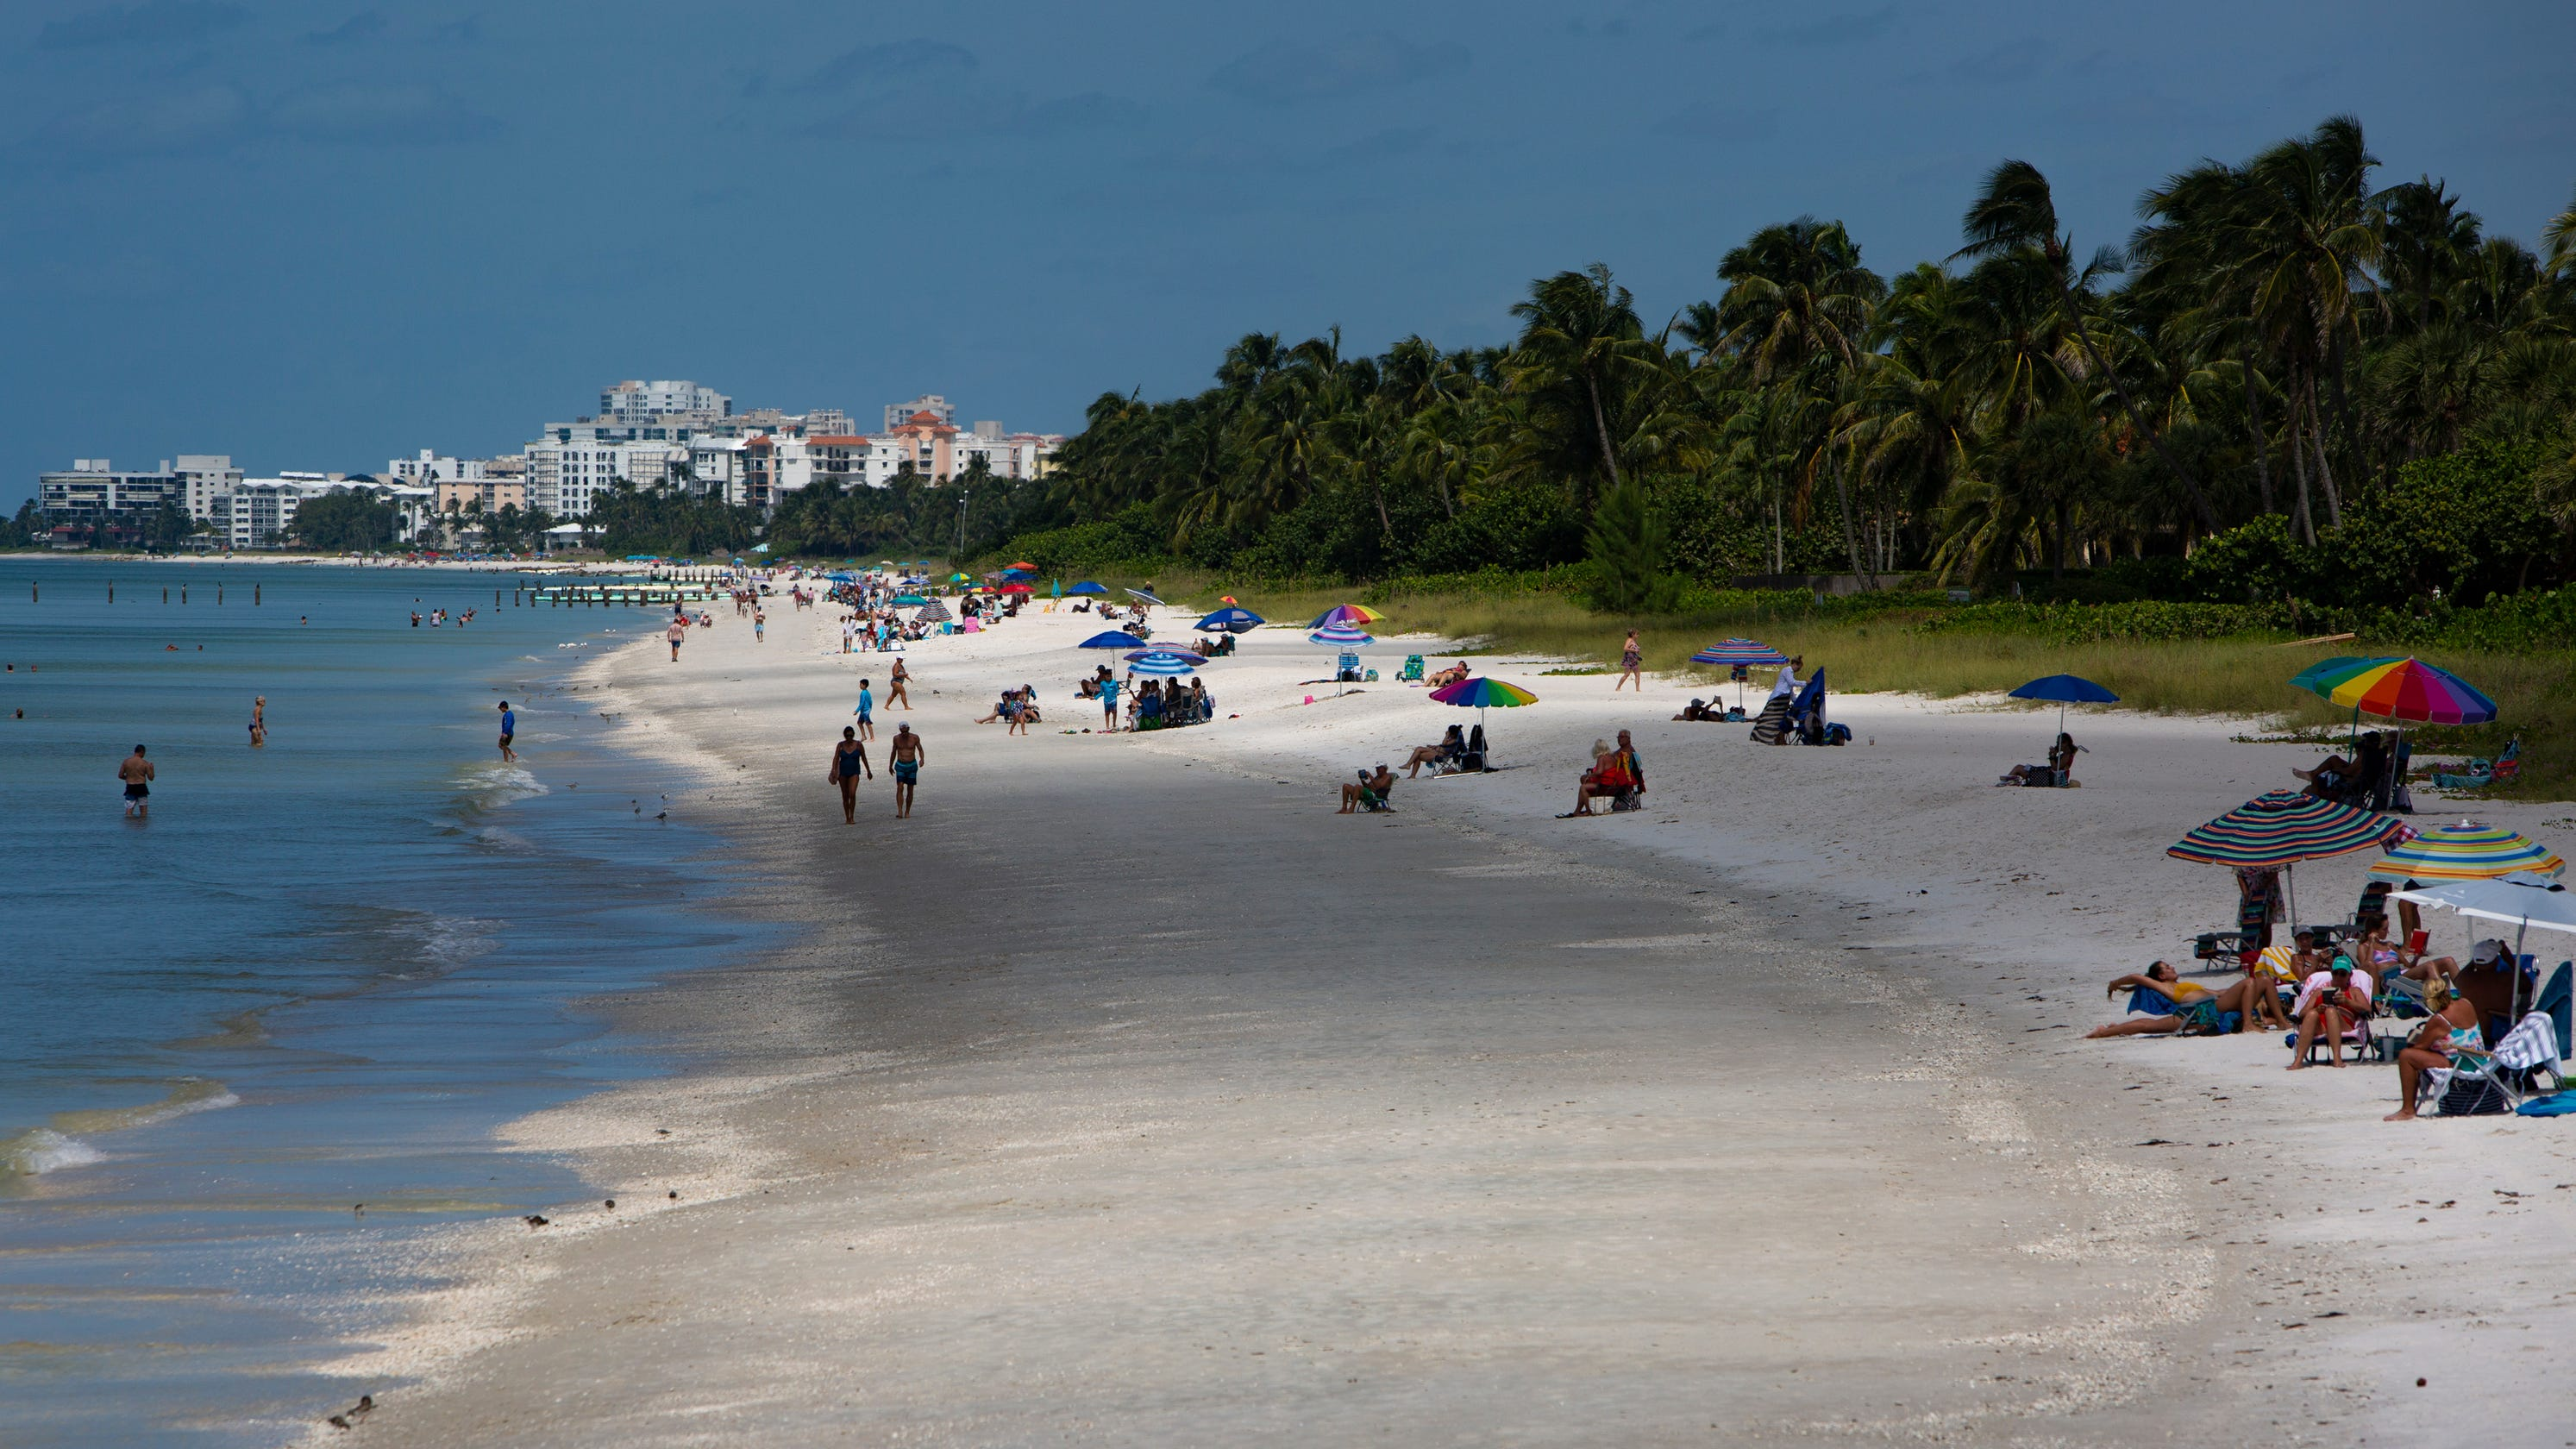 Naples rated No. 1 beach town to live in, writes Travel + Leisure magazine